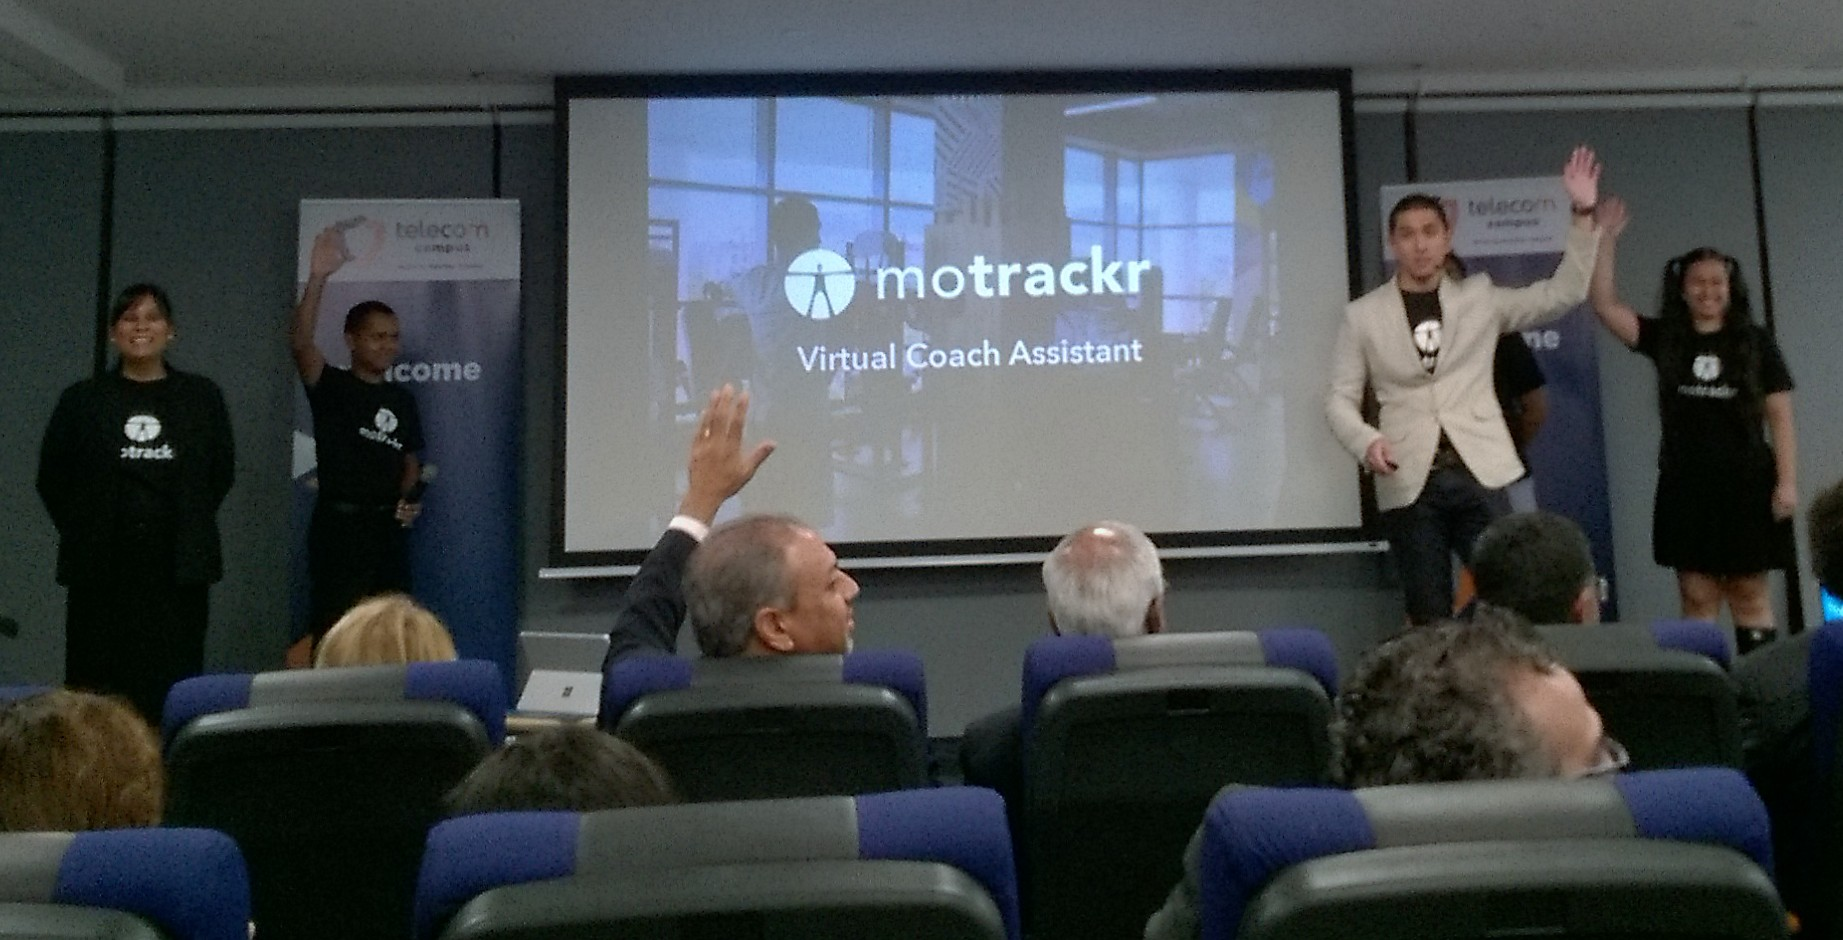 motrackr - Virtual Coach Assistant